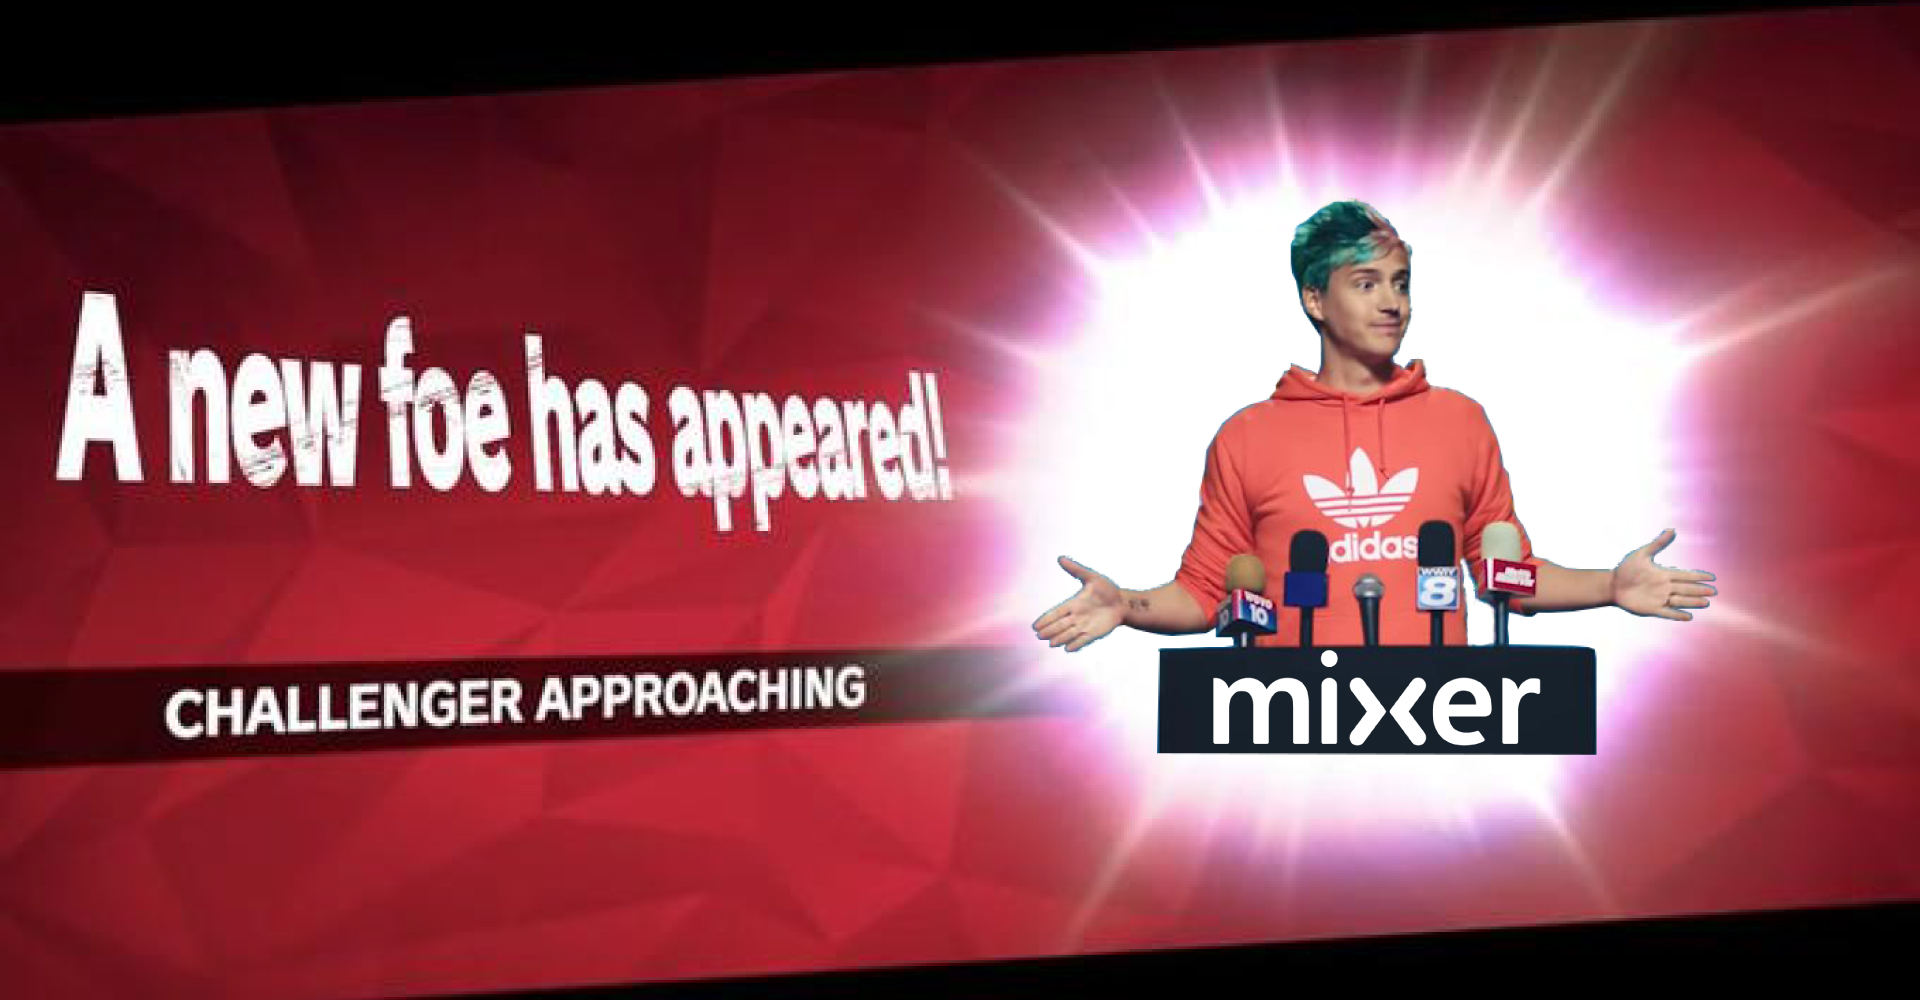 Ninja and Mixer Challenge Twitch for Live-Streaming Dominance